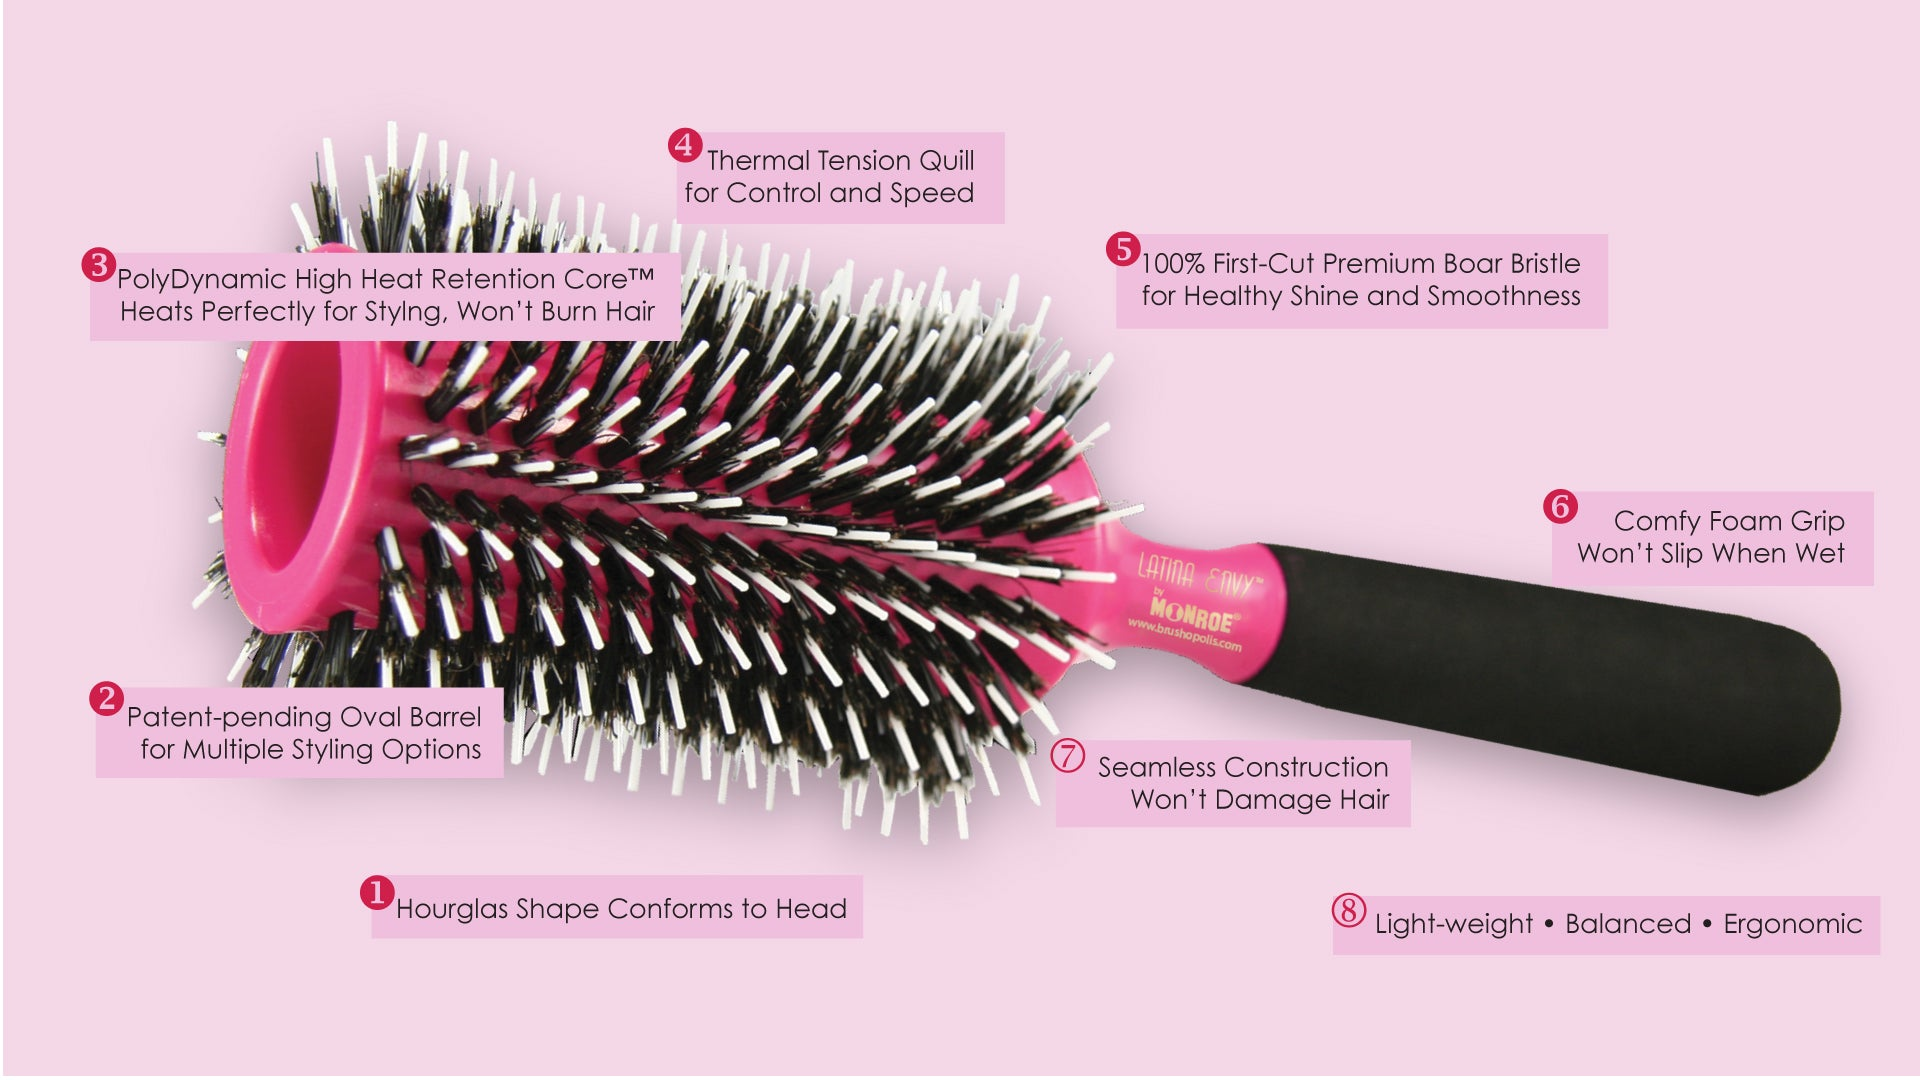 MONROE LATINA ENVY Hourglass Oval Styling Brush